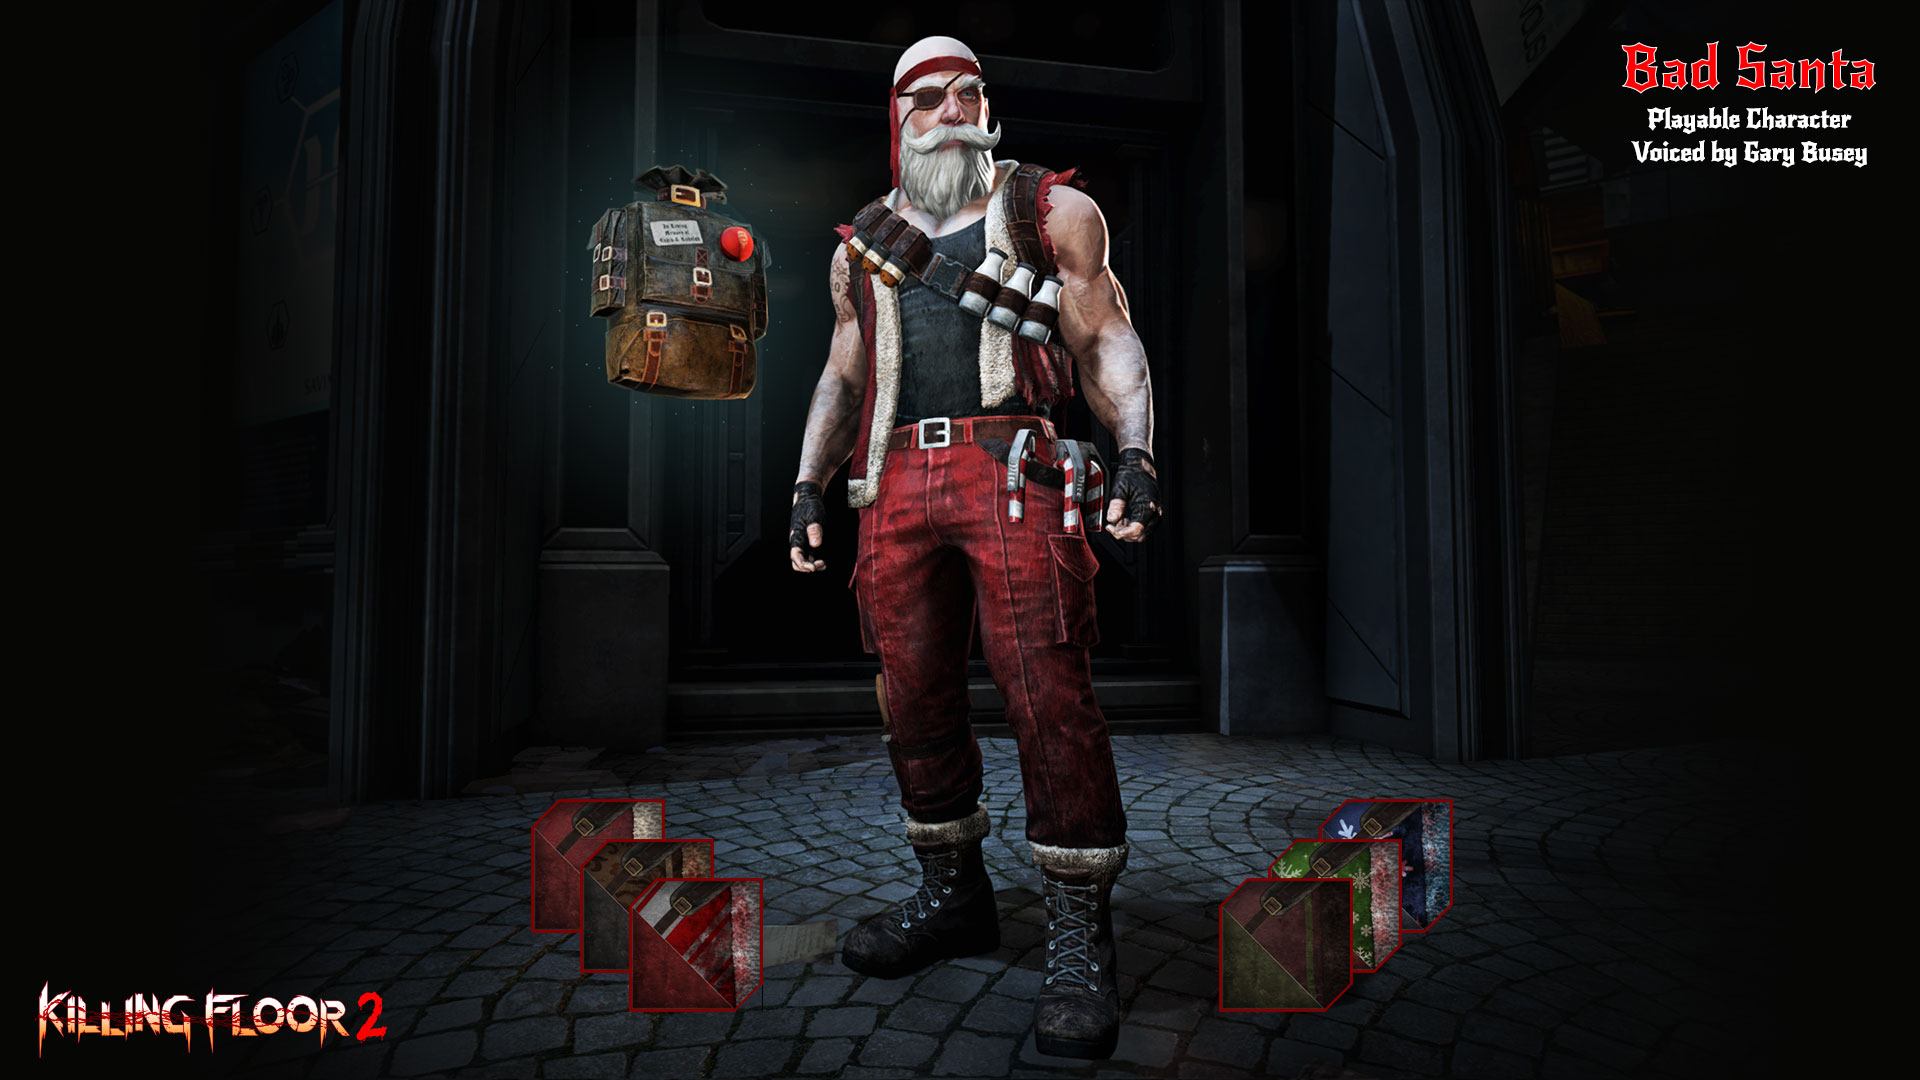 Floor 2 Twisted Christmas 2021 Release Date Killing Floor 2 Unleashes Badass Santa For Some Christmas Carnage